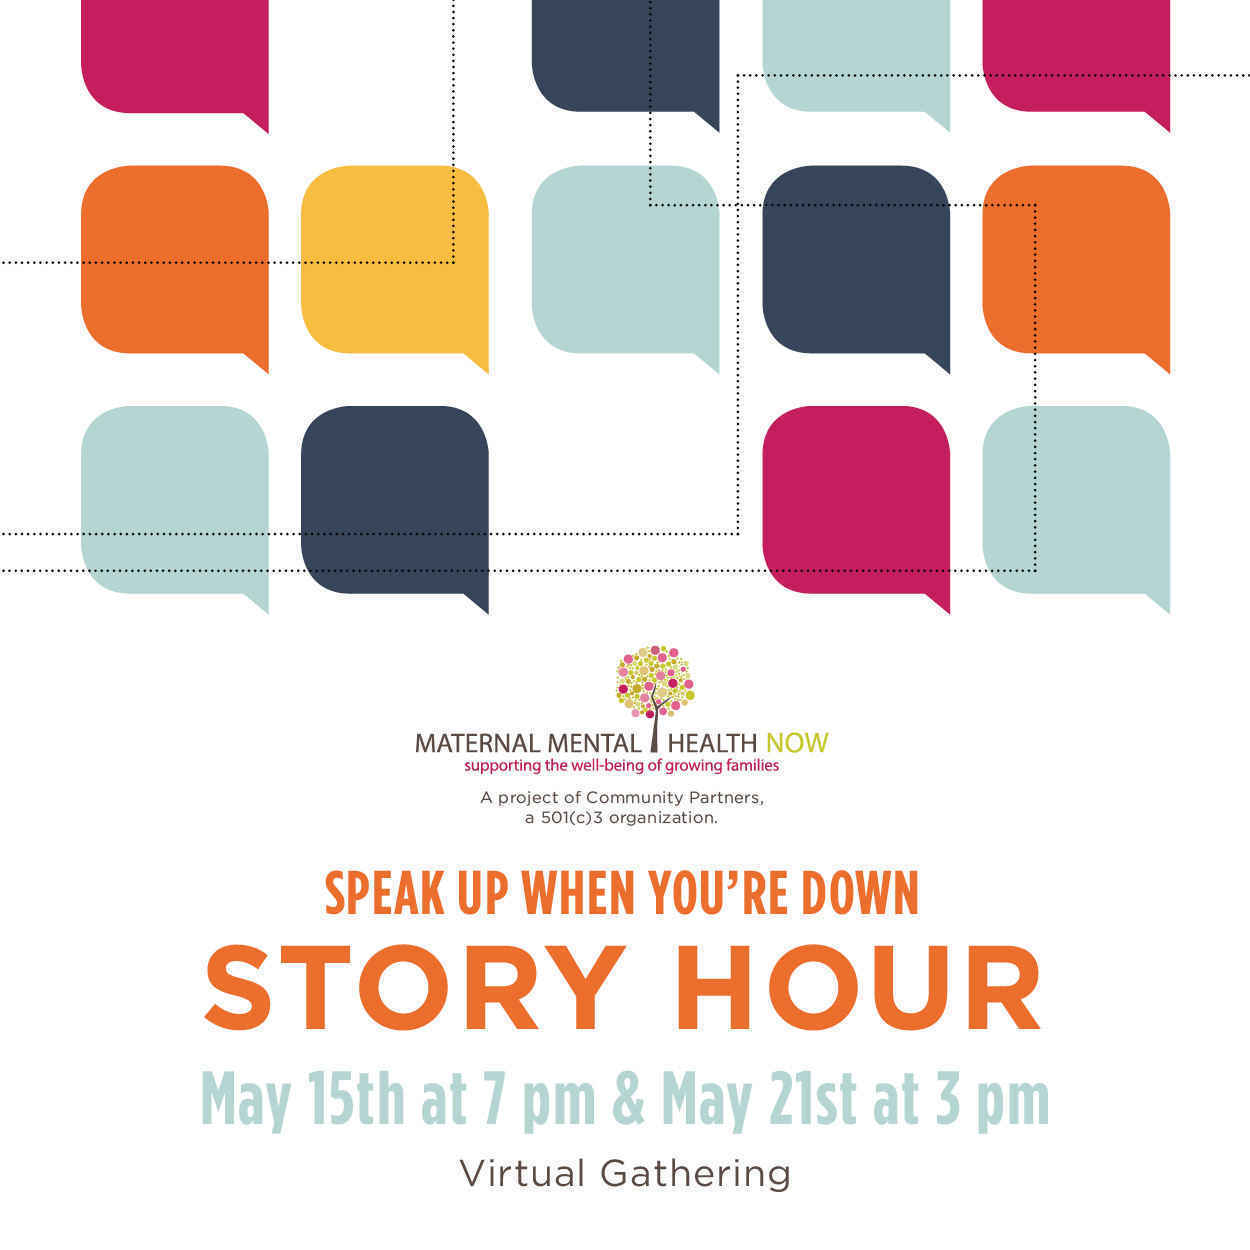 Speak Up When You're Down Story Hour  image